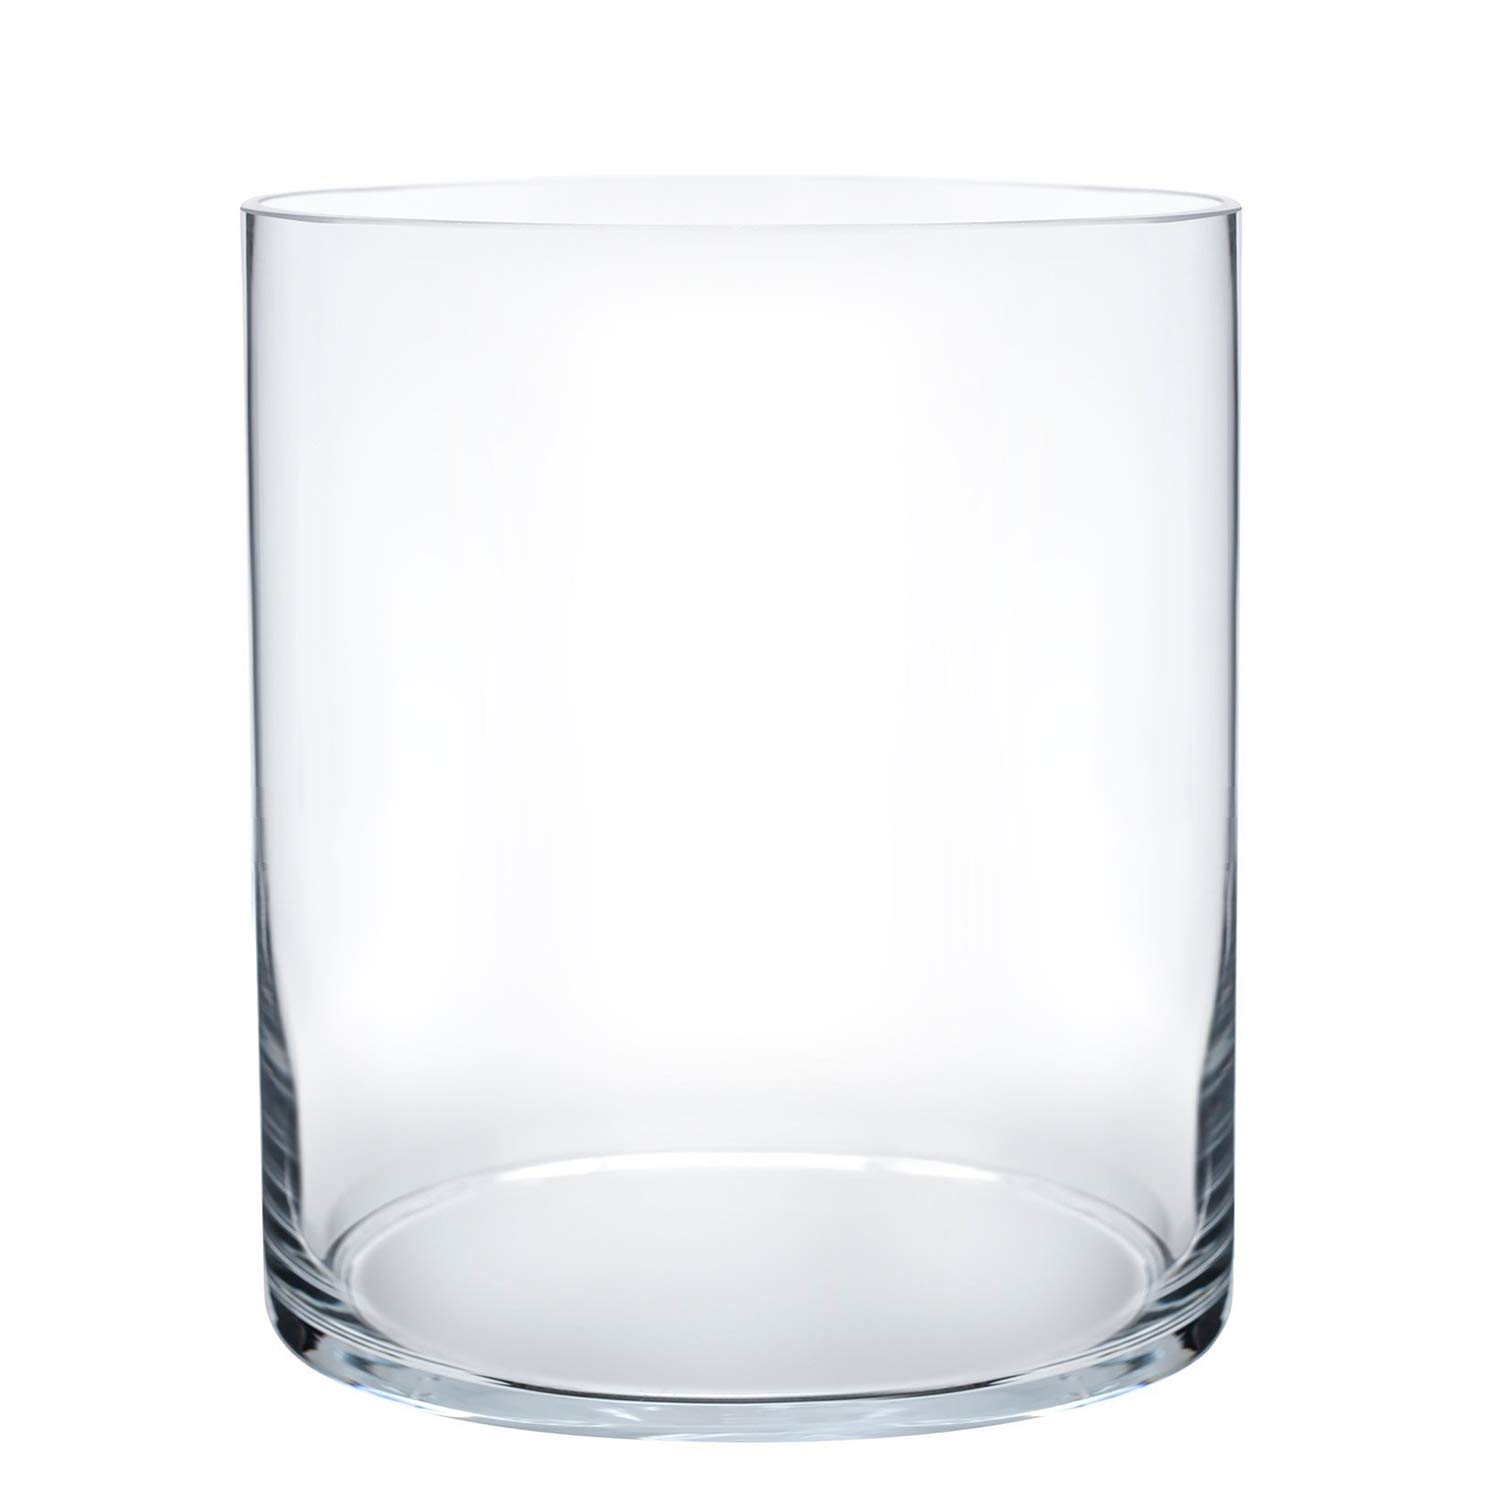 Best gl round vases for centerpieces | Amazon.com Round Vases For Centerpieces on water vase centerpieces, shoe vase centerpieces, glass beads for centerpieces, table decorations centerpieces, small vase centerpieces, trumpet vase centerpieces, vase fillers for centerpieces, christmas centerpieces,